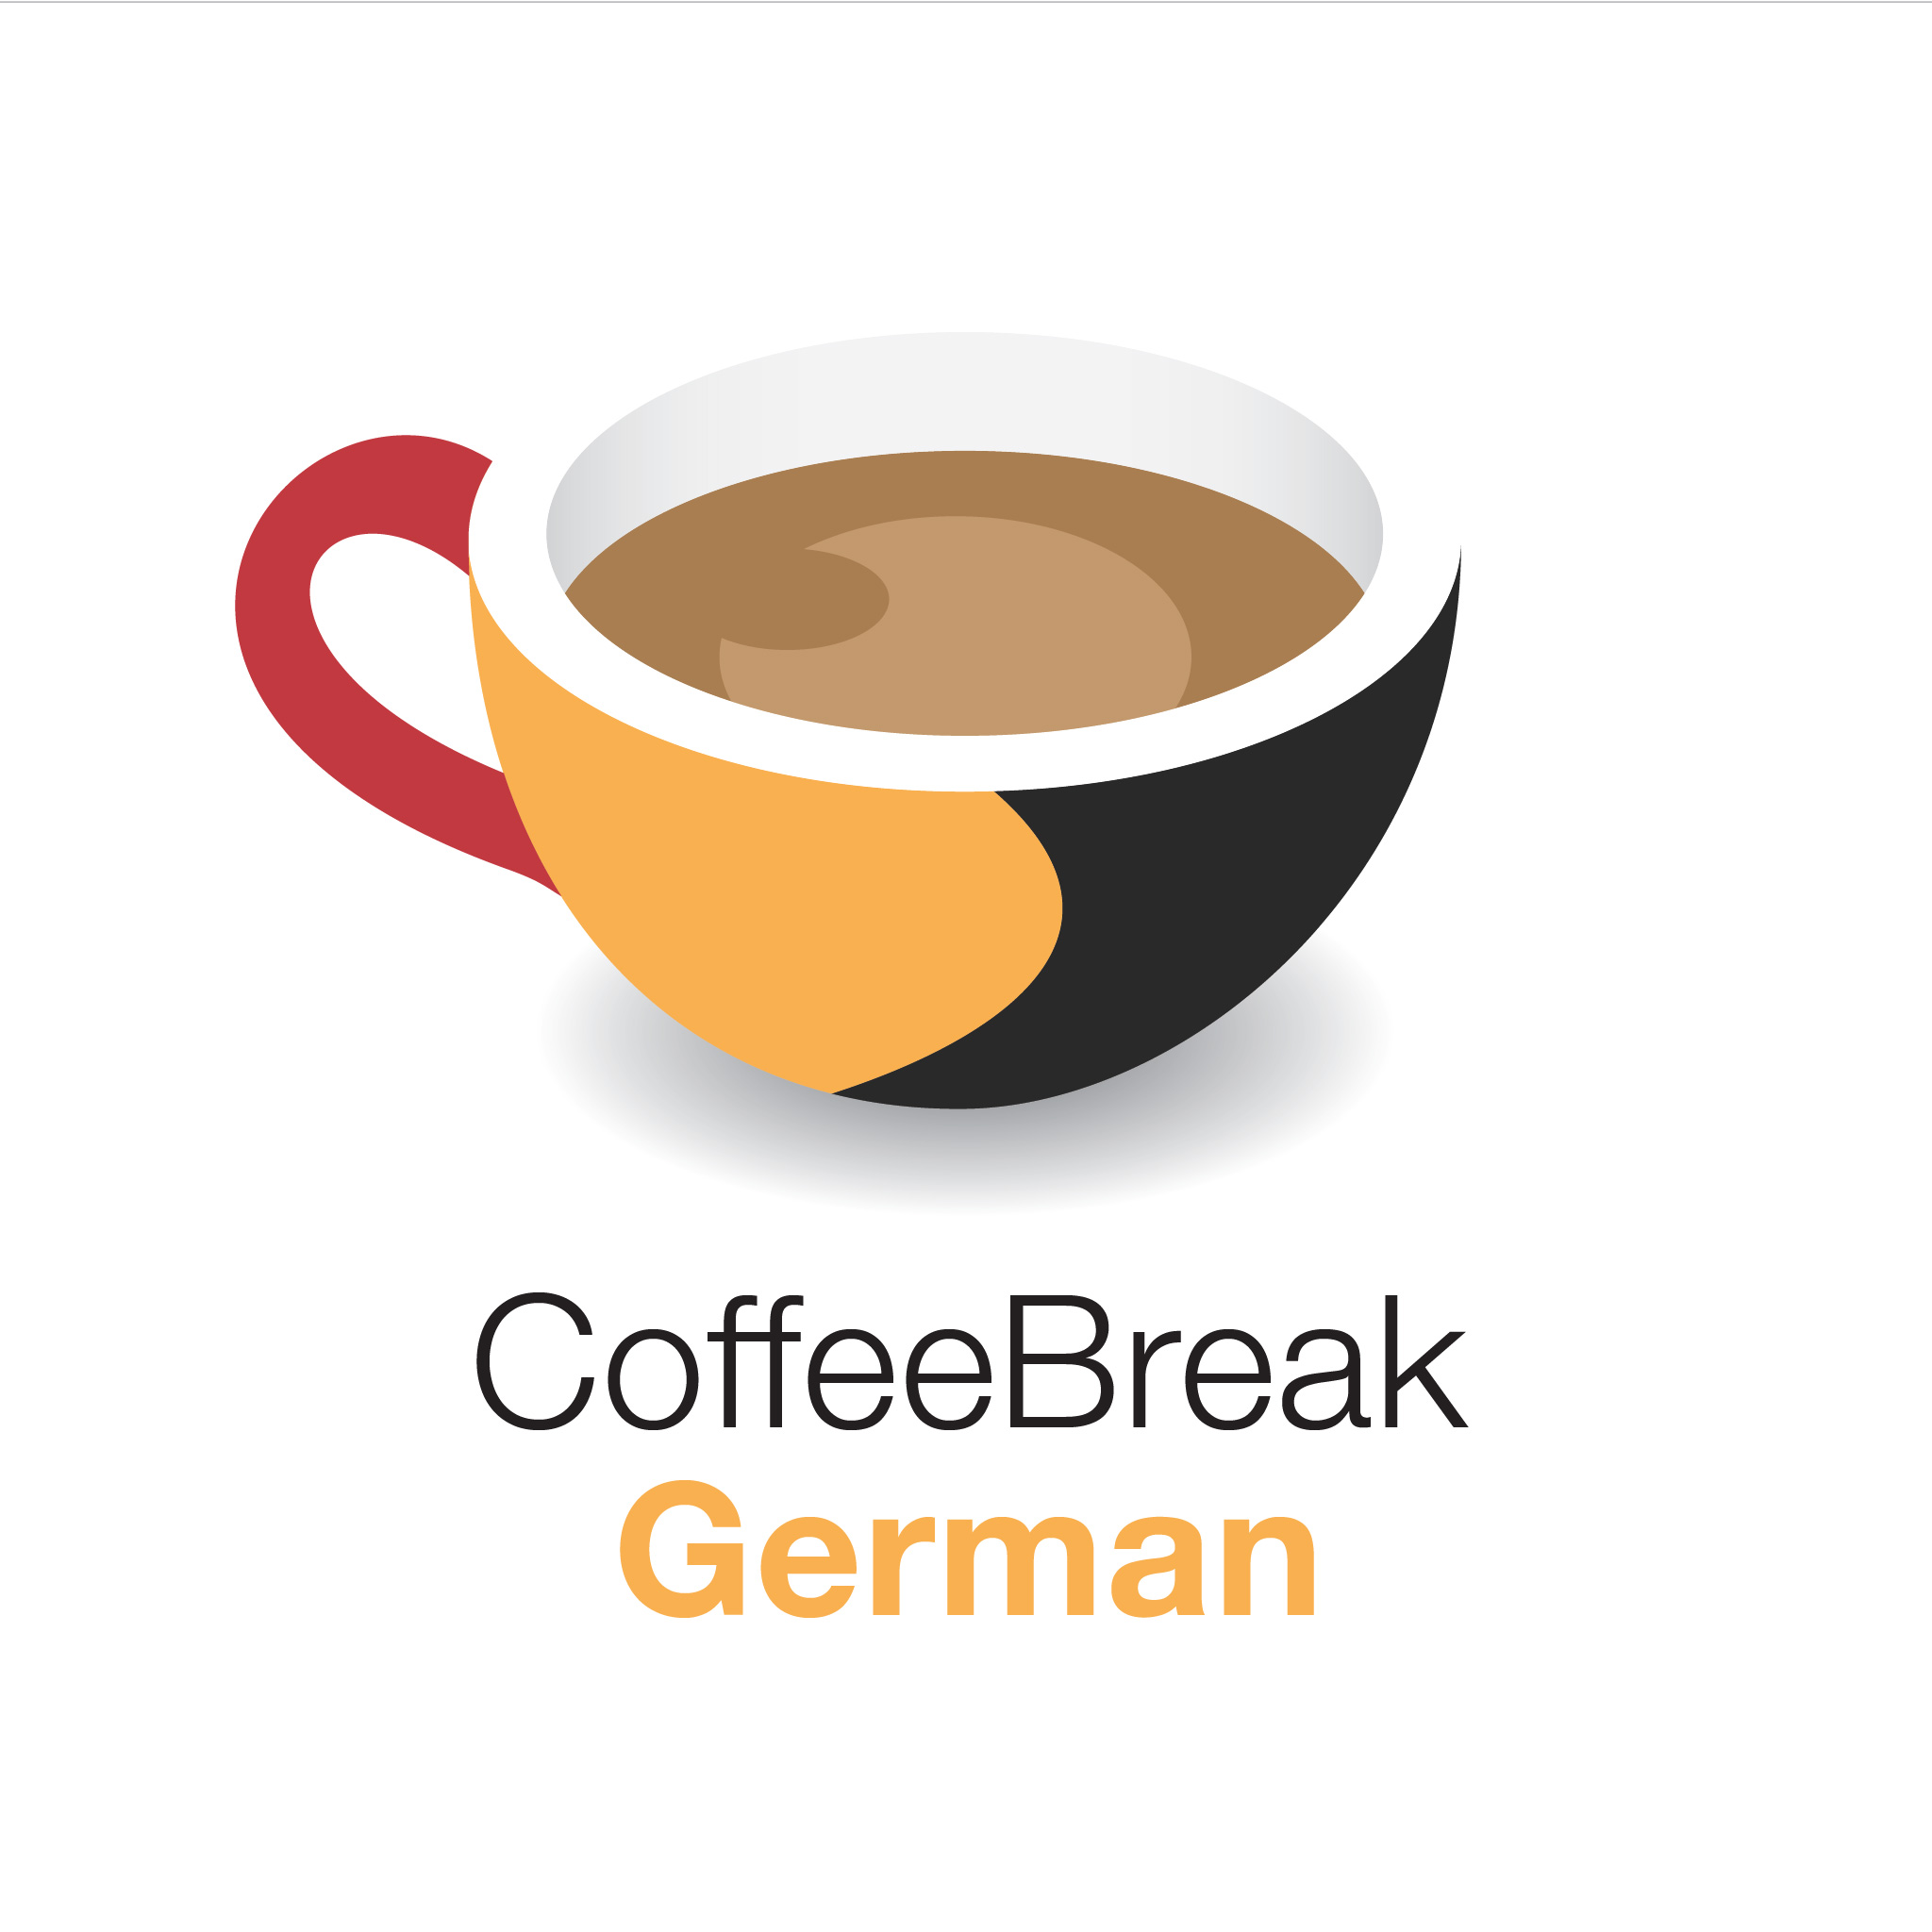 The Coffee Break German Team